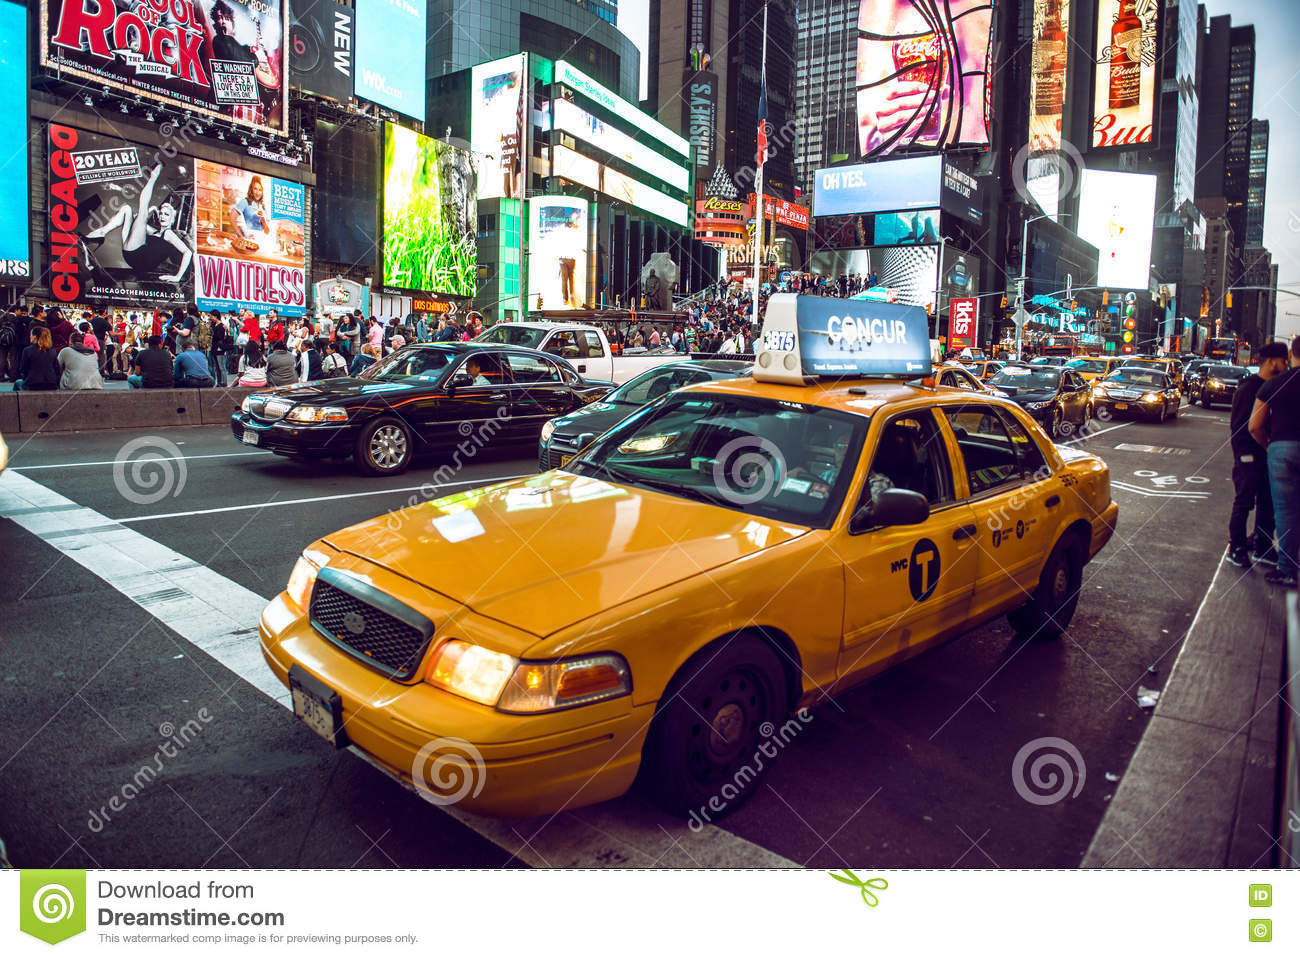 Yellow cab on Times Square traffic and animated LED signs, is a symbol of New York City and the United States, May 12, 2016